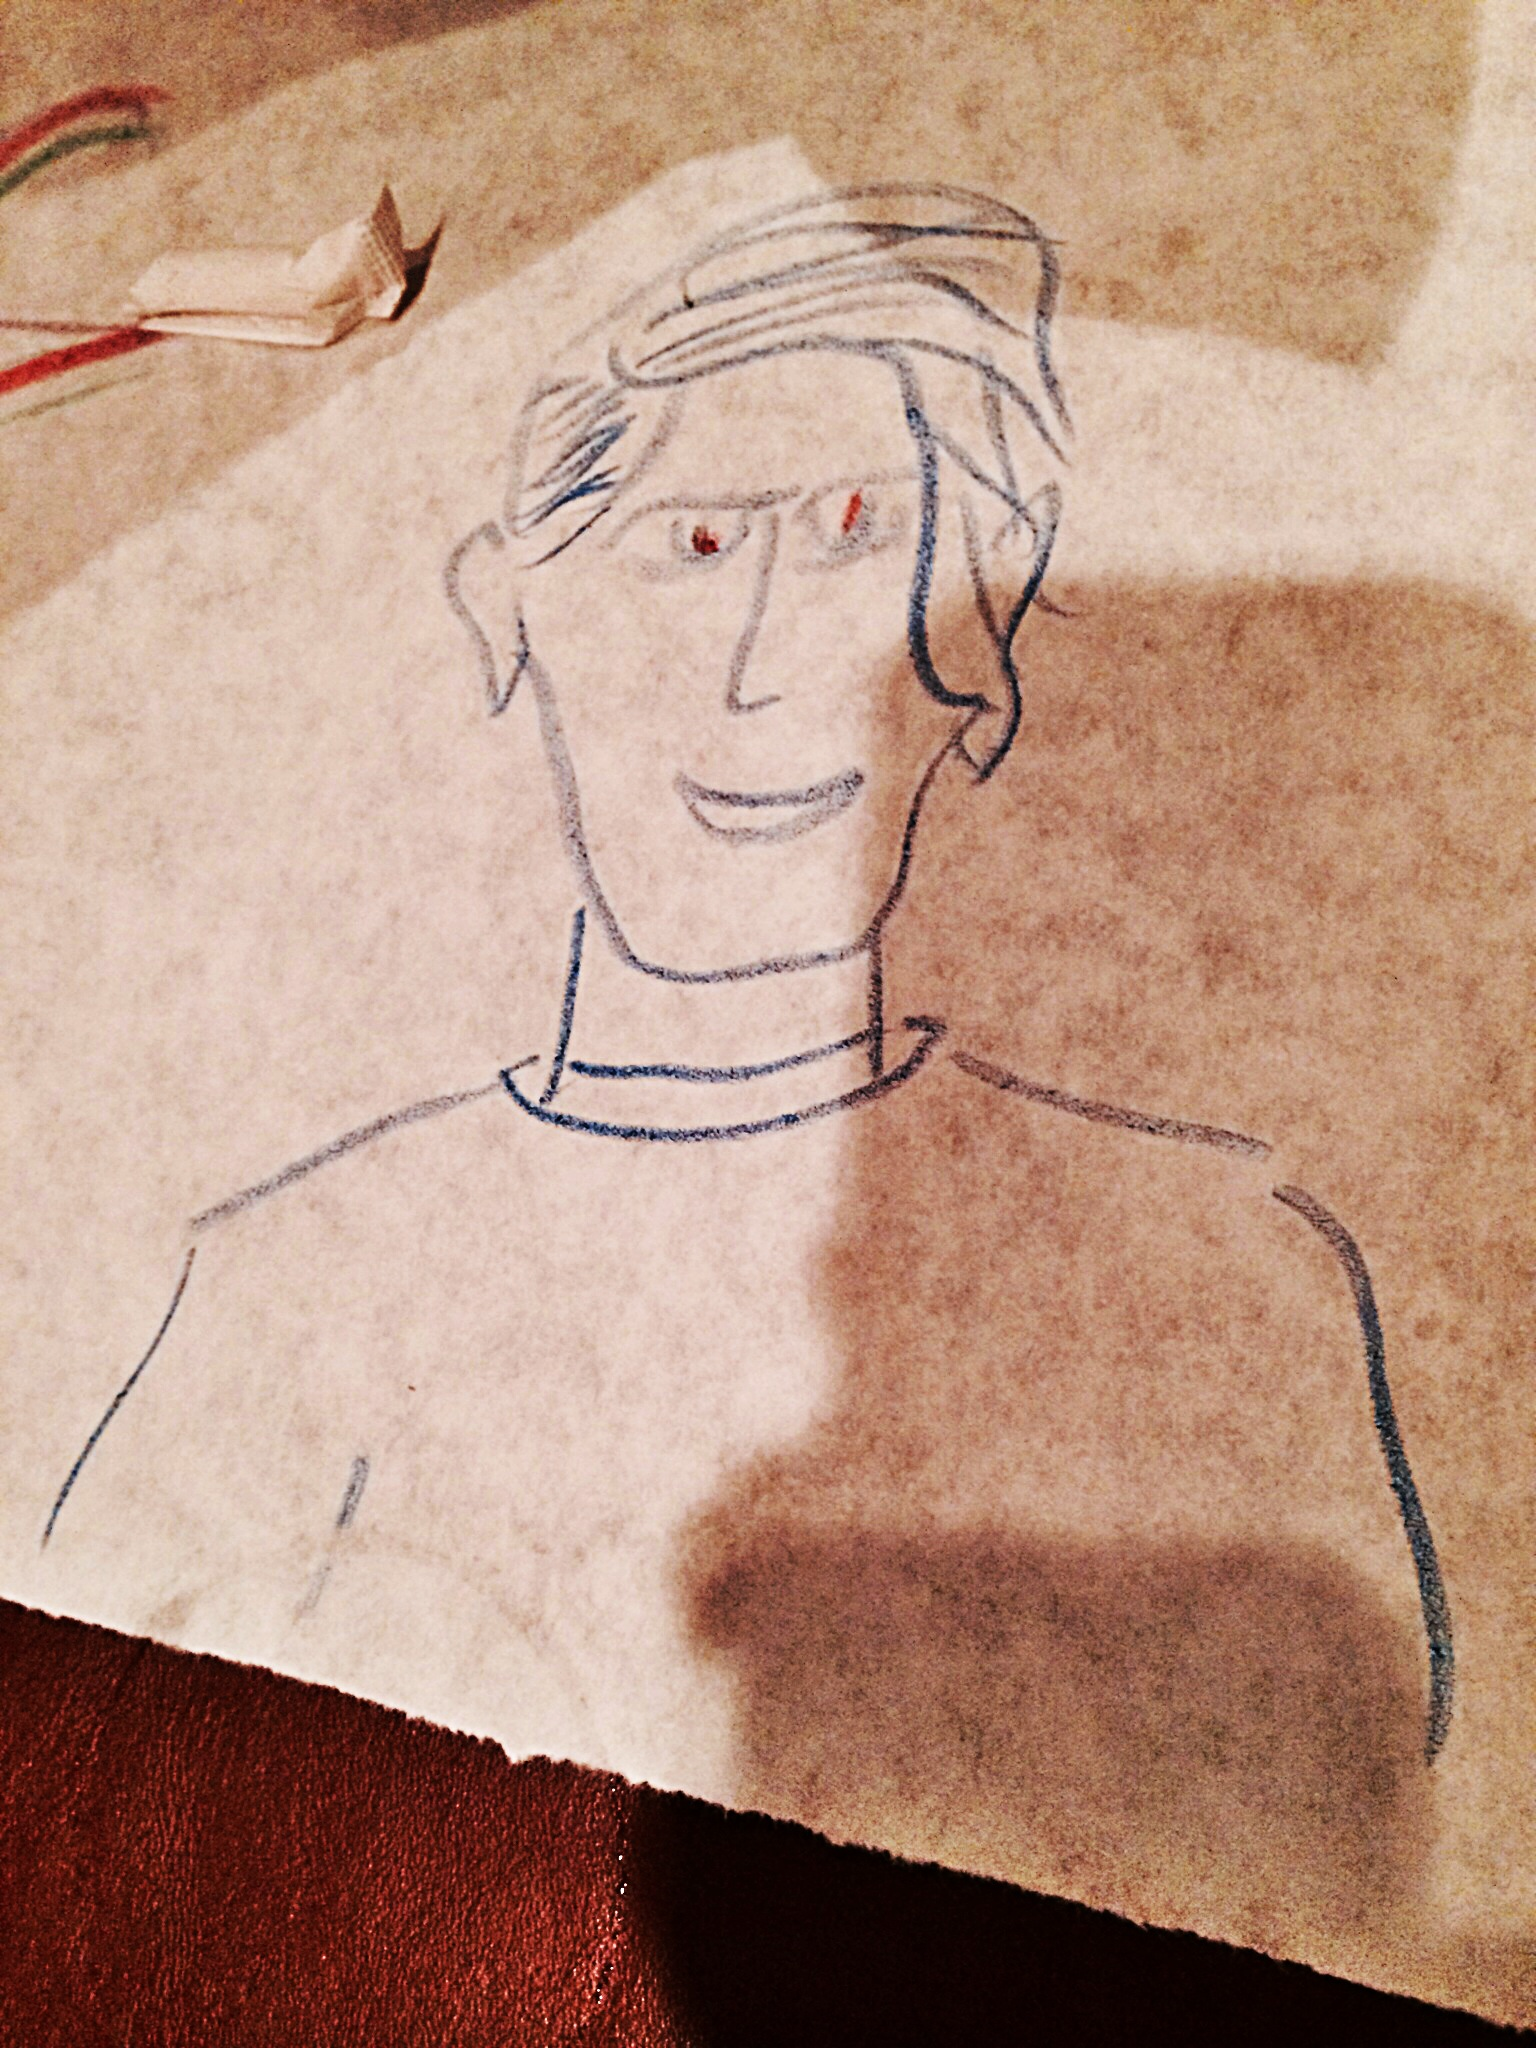 This was the drawing my dad of me at Tomato Street this past Saturday night.